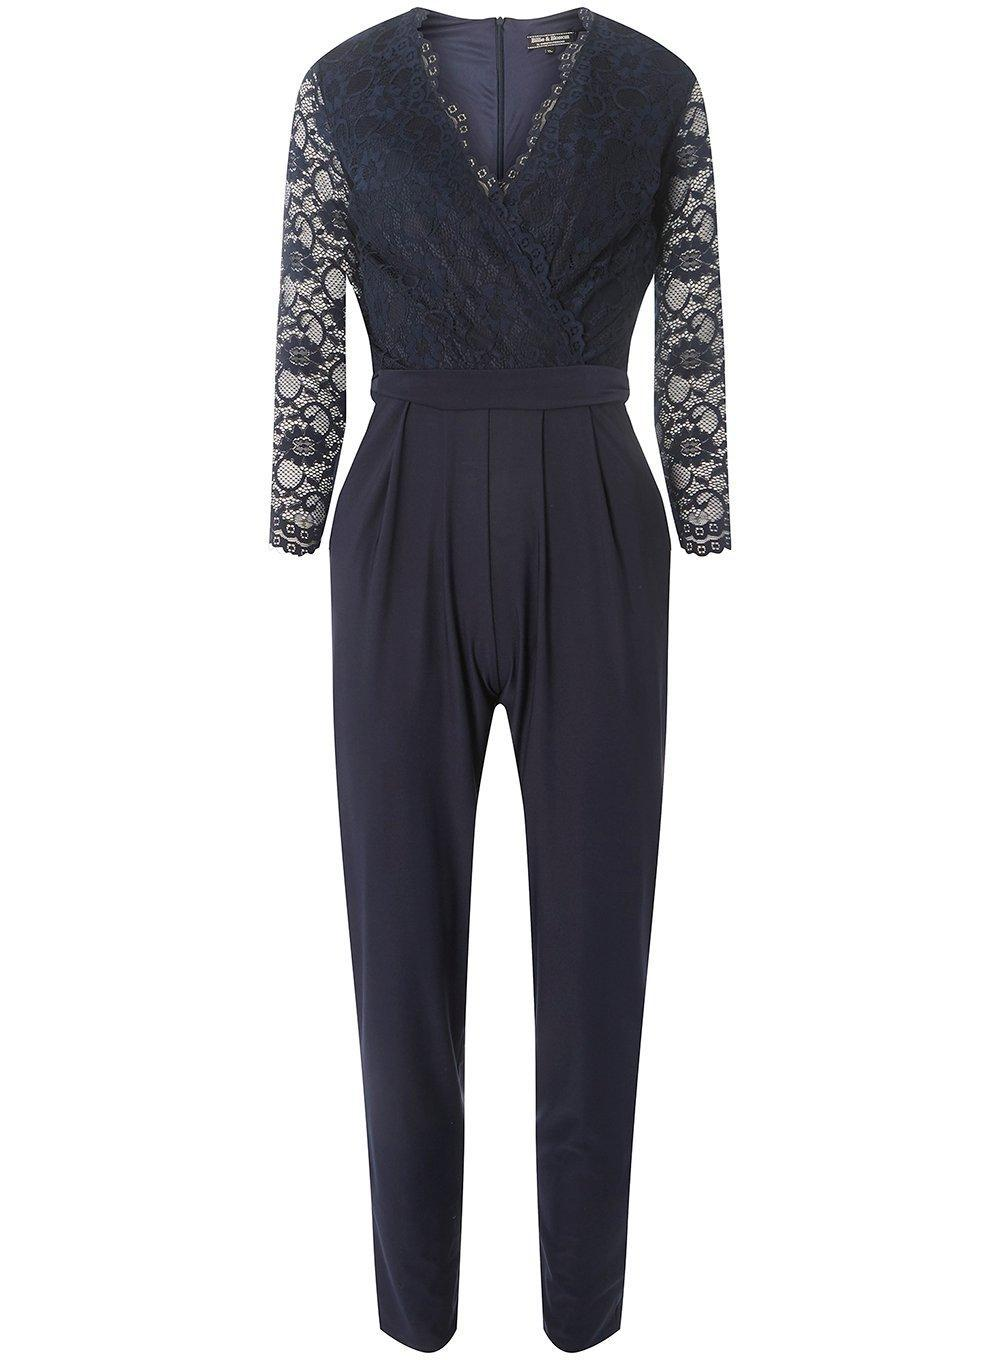 1bab0b39d253 Lyst - Dorothy Perkins Billie   Blossom Navy Lace Jumpsuit in Blue